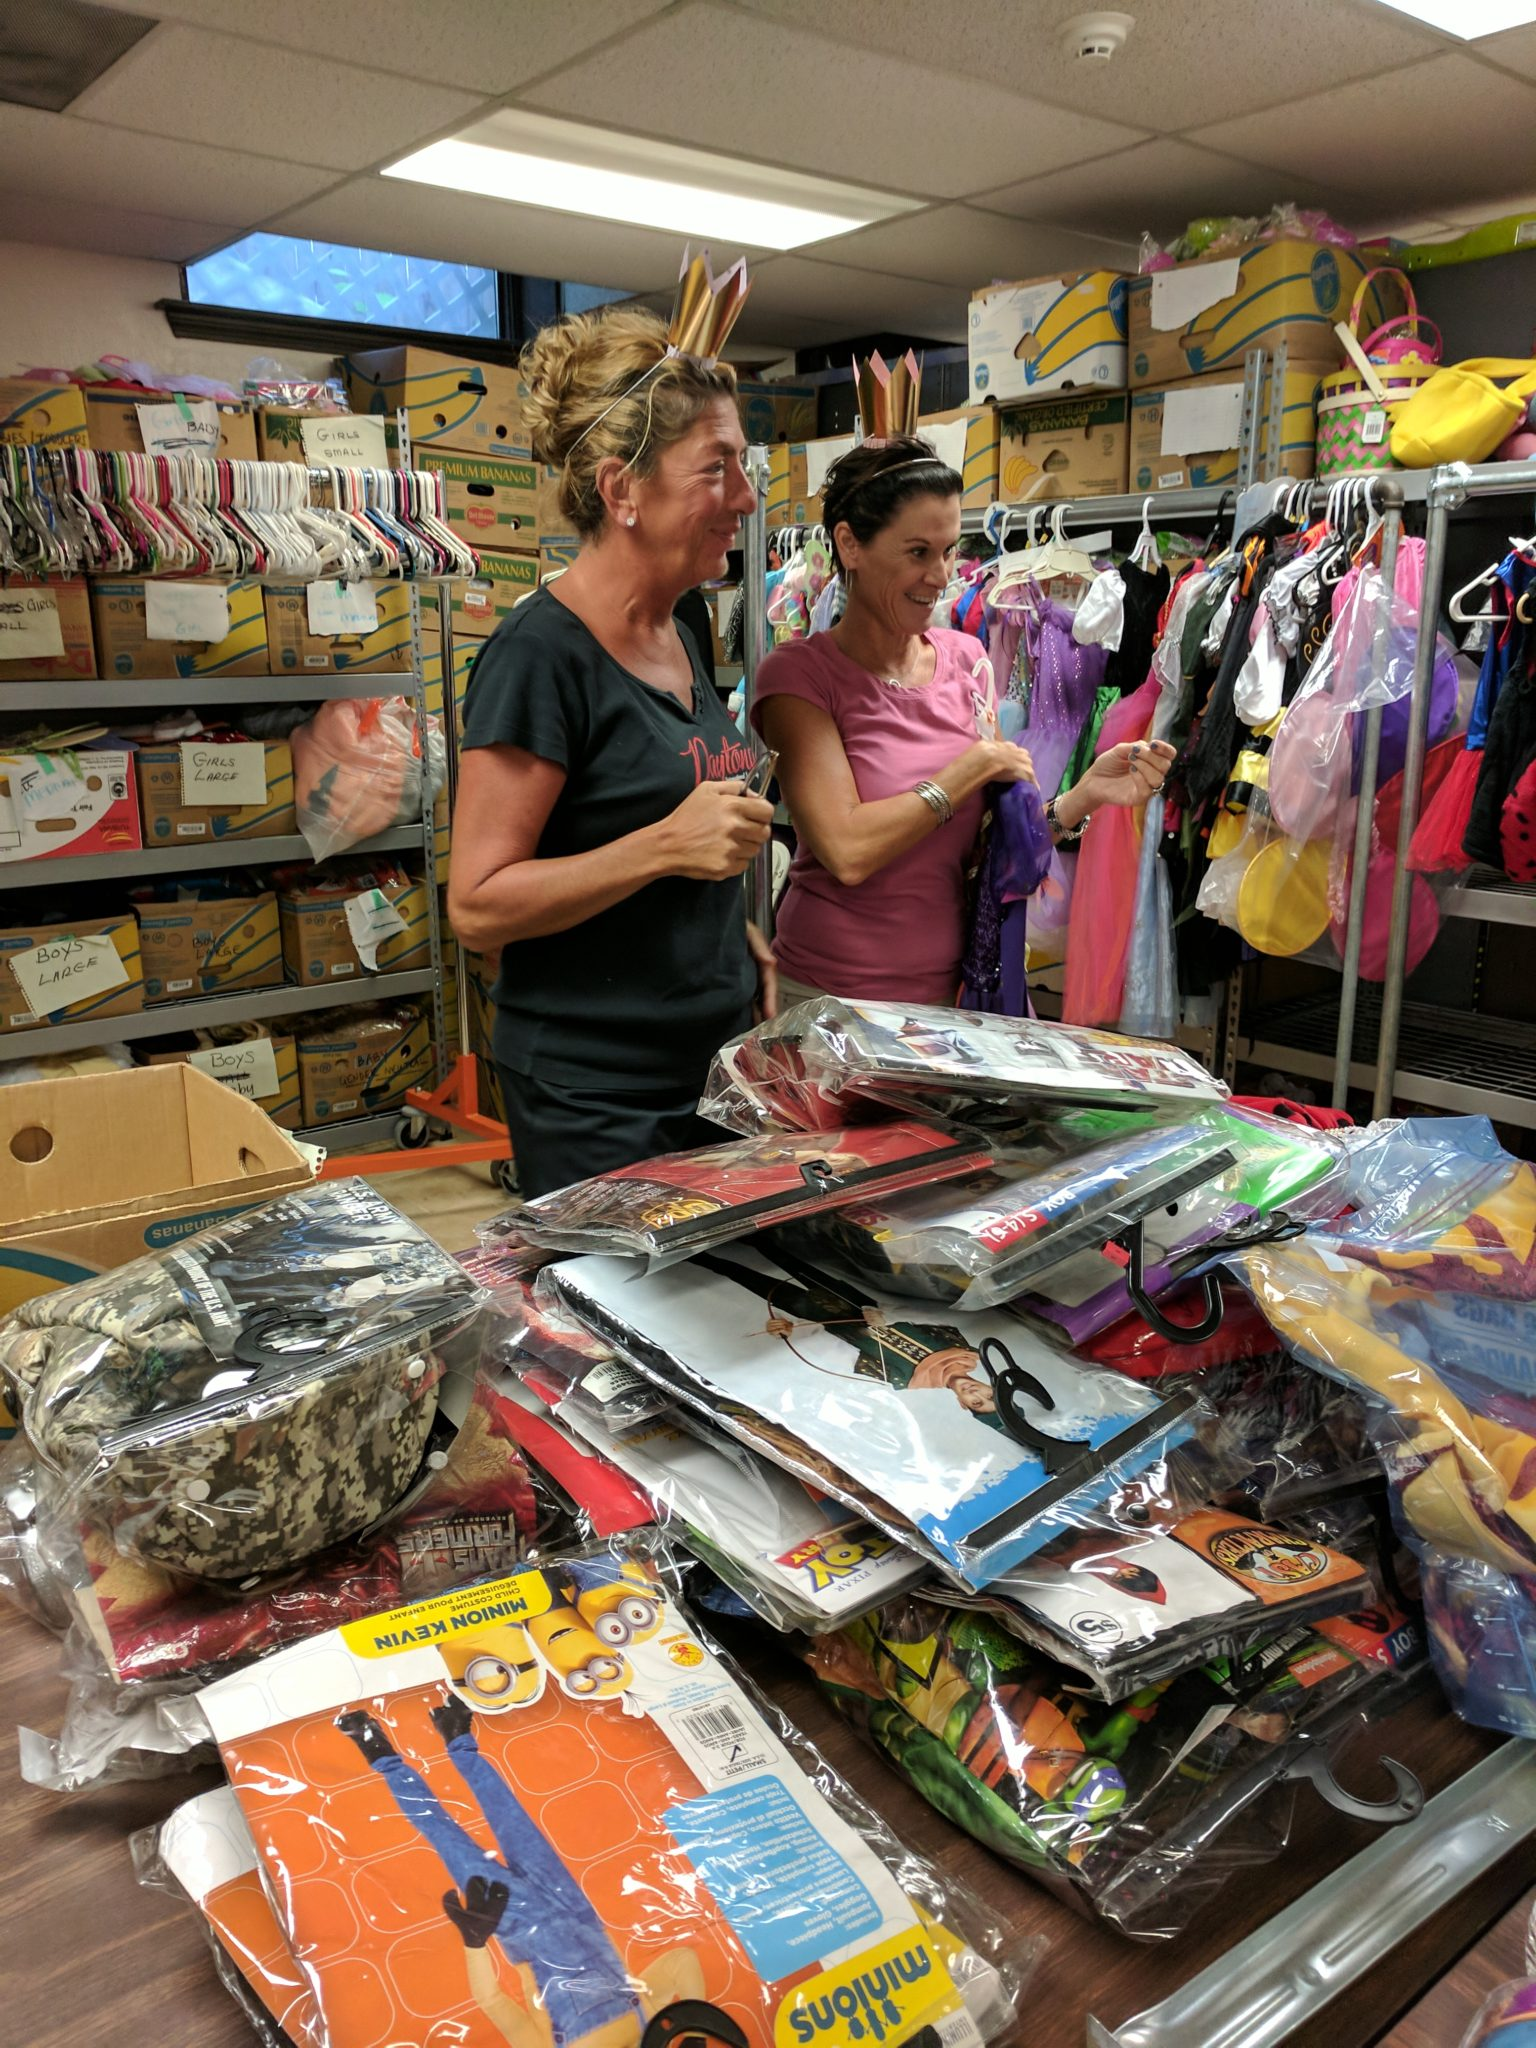 Robin and Judy sort through mounds of costume donations in the weeks leading up to distribution day. Photo by Jennifer Sammons.